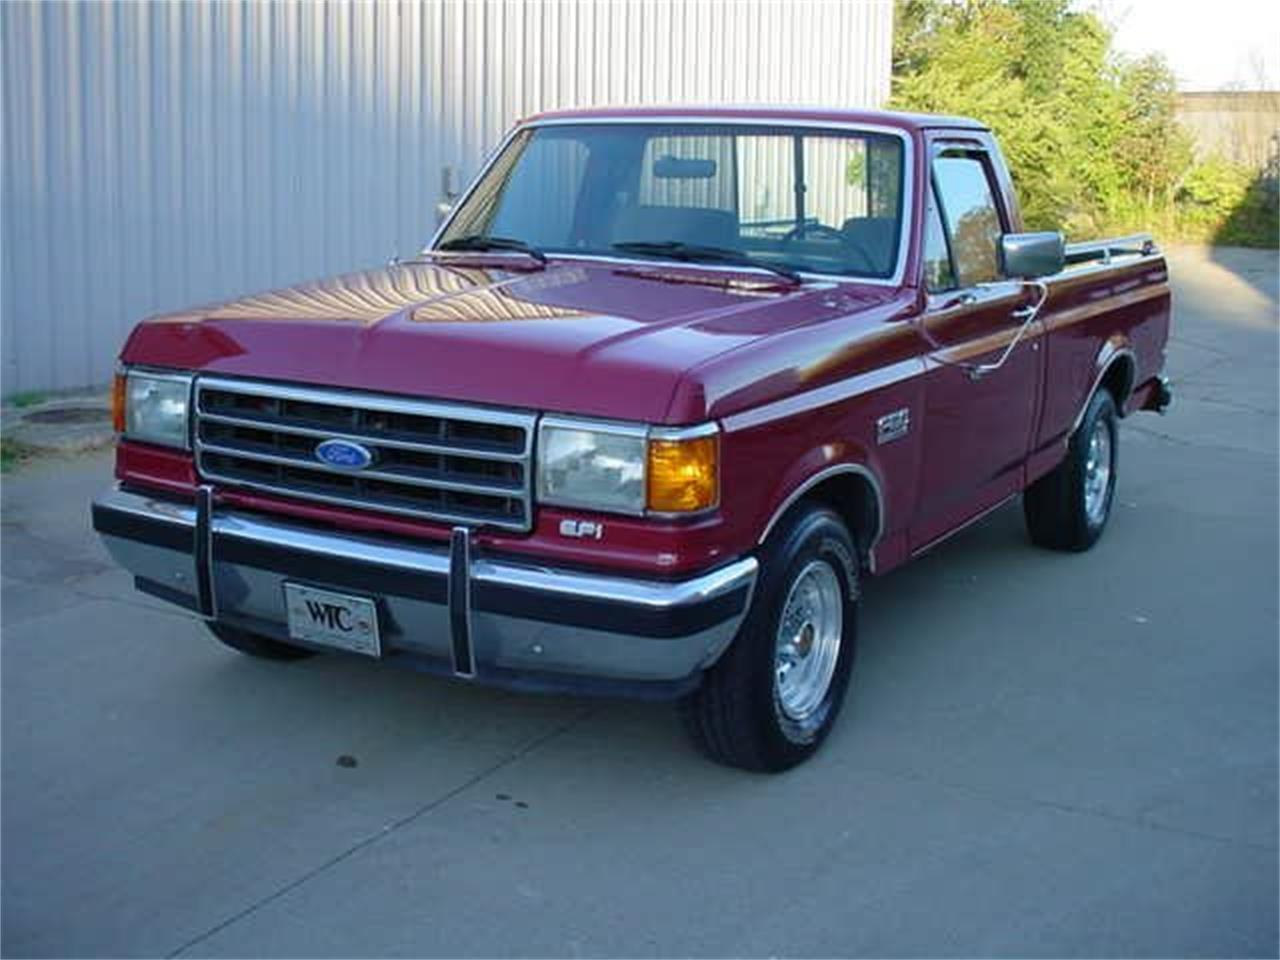 Large picture of 91 f150 m4x1